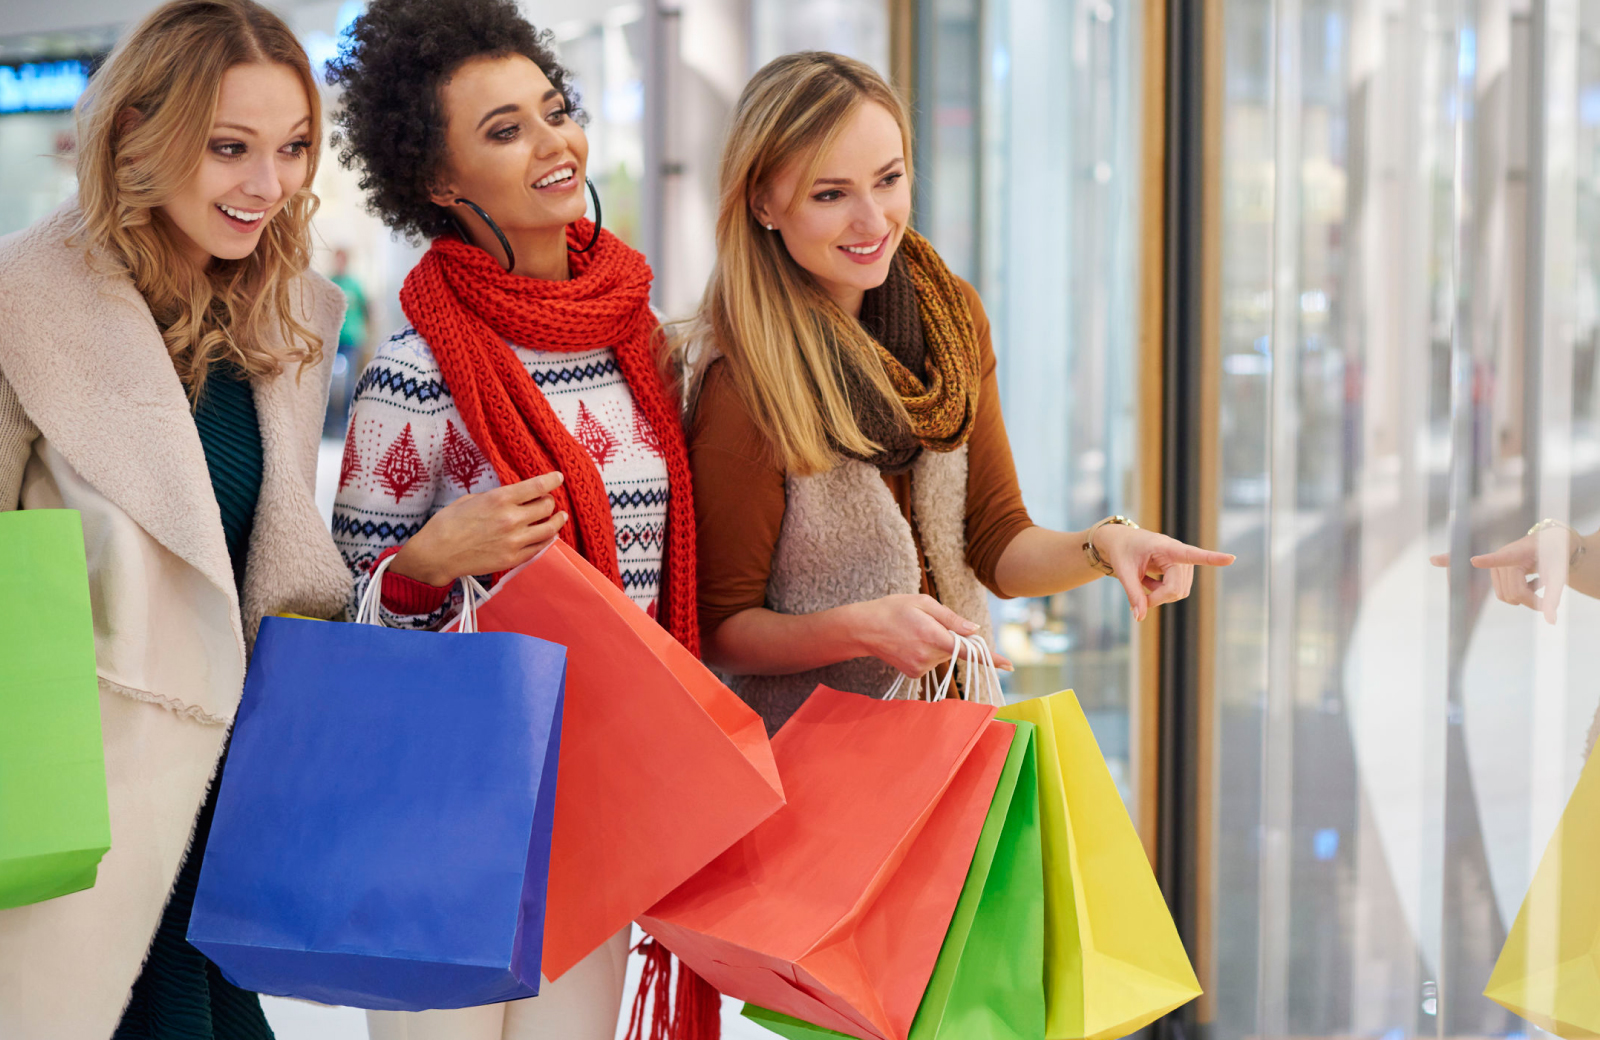 3 women shopping carrying multi colored shopping bags - Wall Street apartments